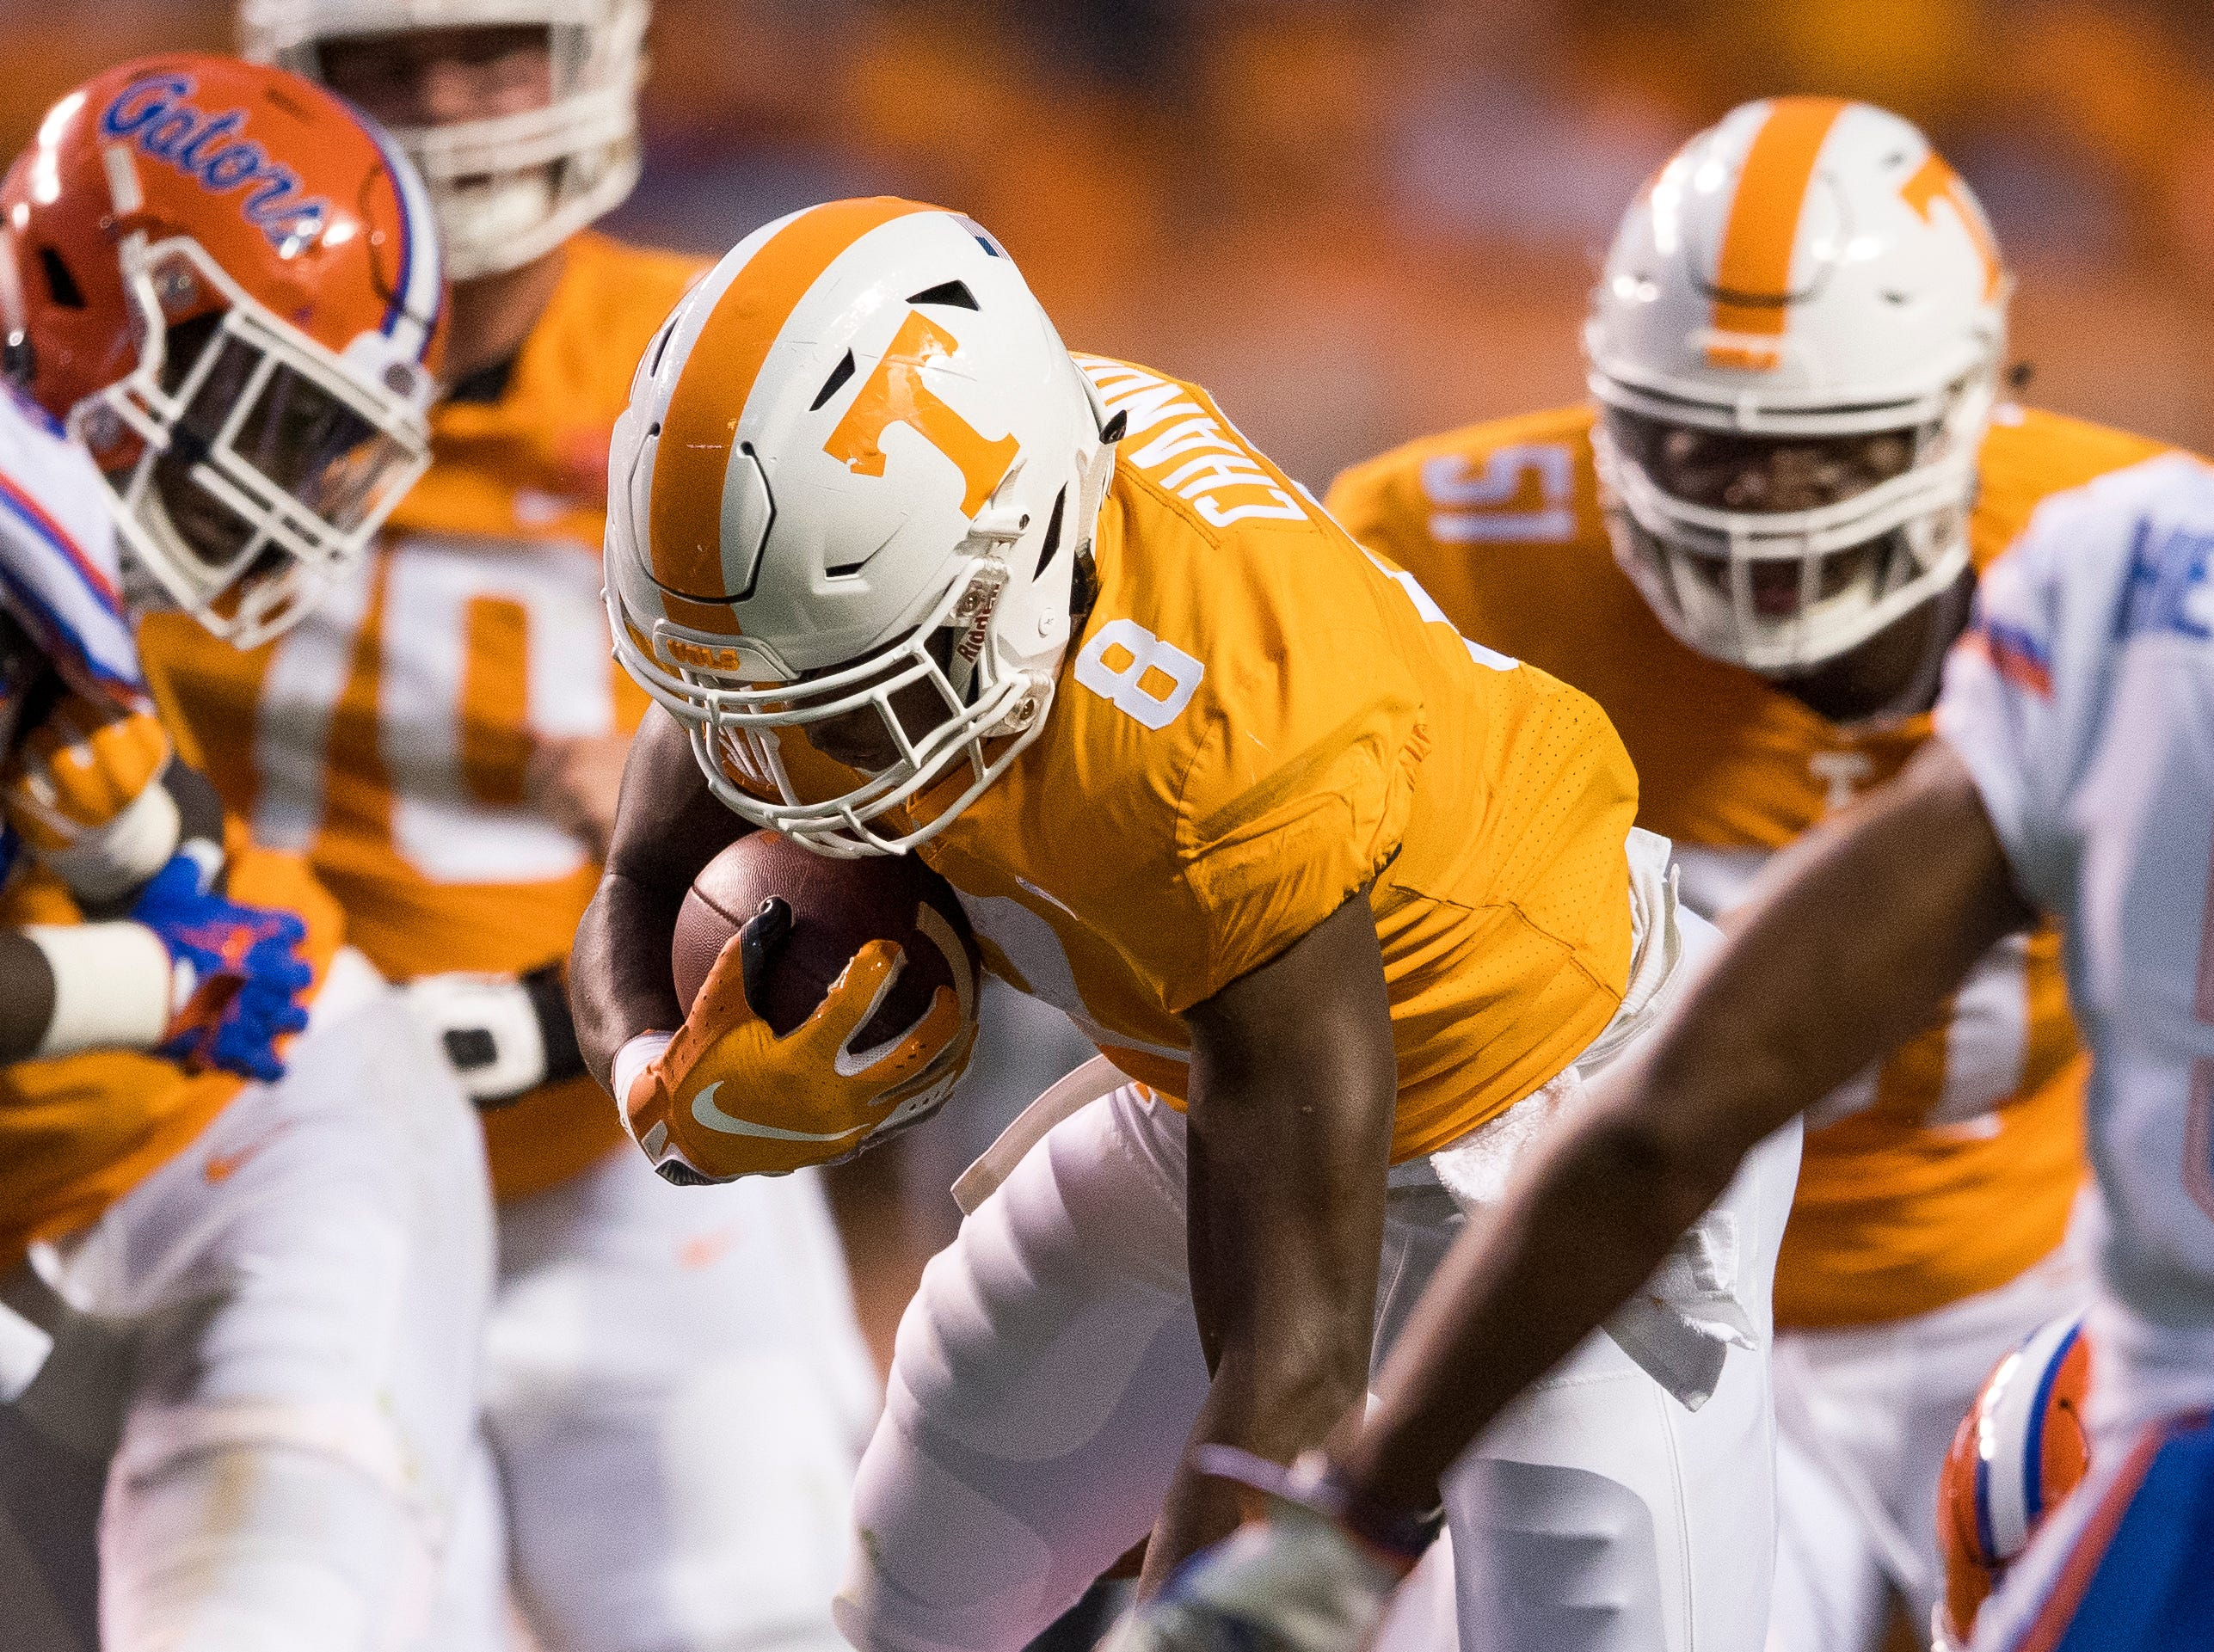 Tennessee running back Ty Chandler (8) leaps over Florida defensive back Brad Stewart, Jr. (2) during the Tennessee Volunteers' game against Florida in Neyland Stadium on Saturday, Sept. 22, 2018.